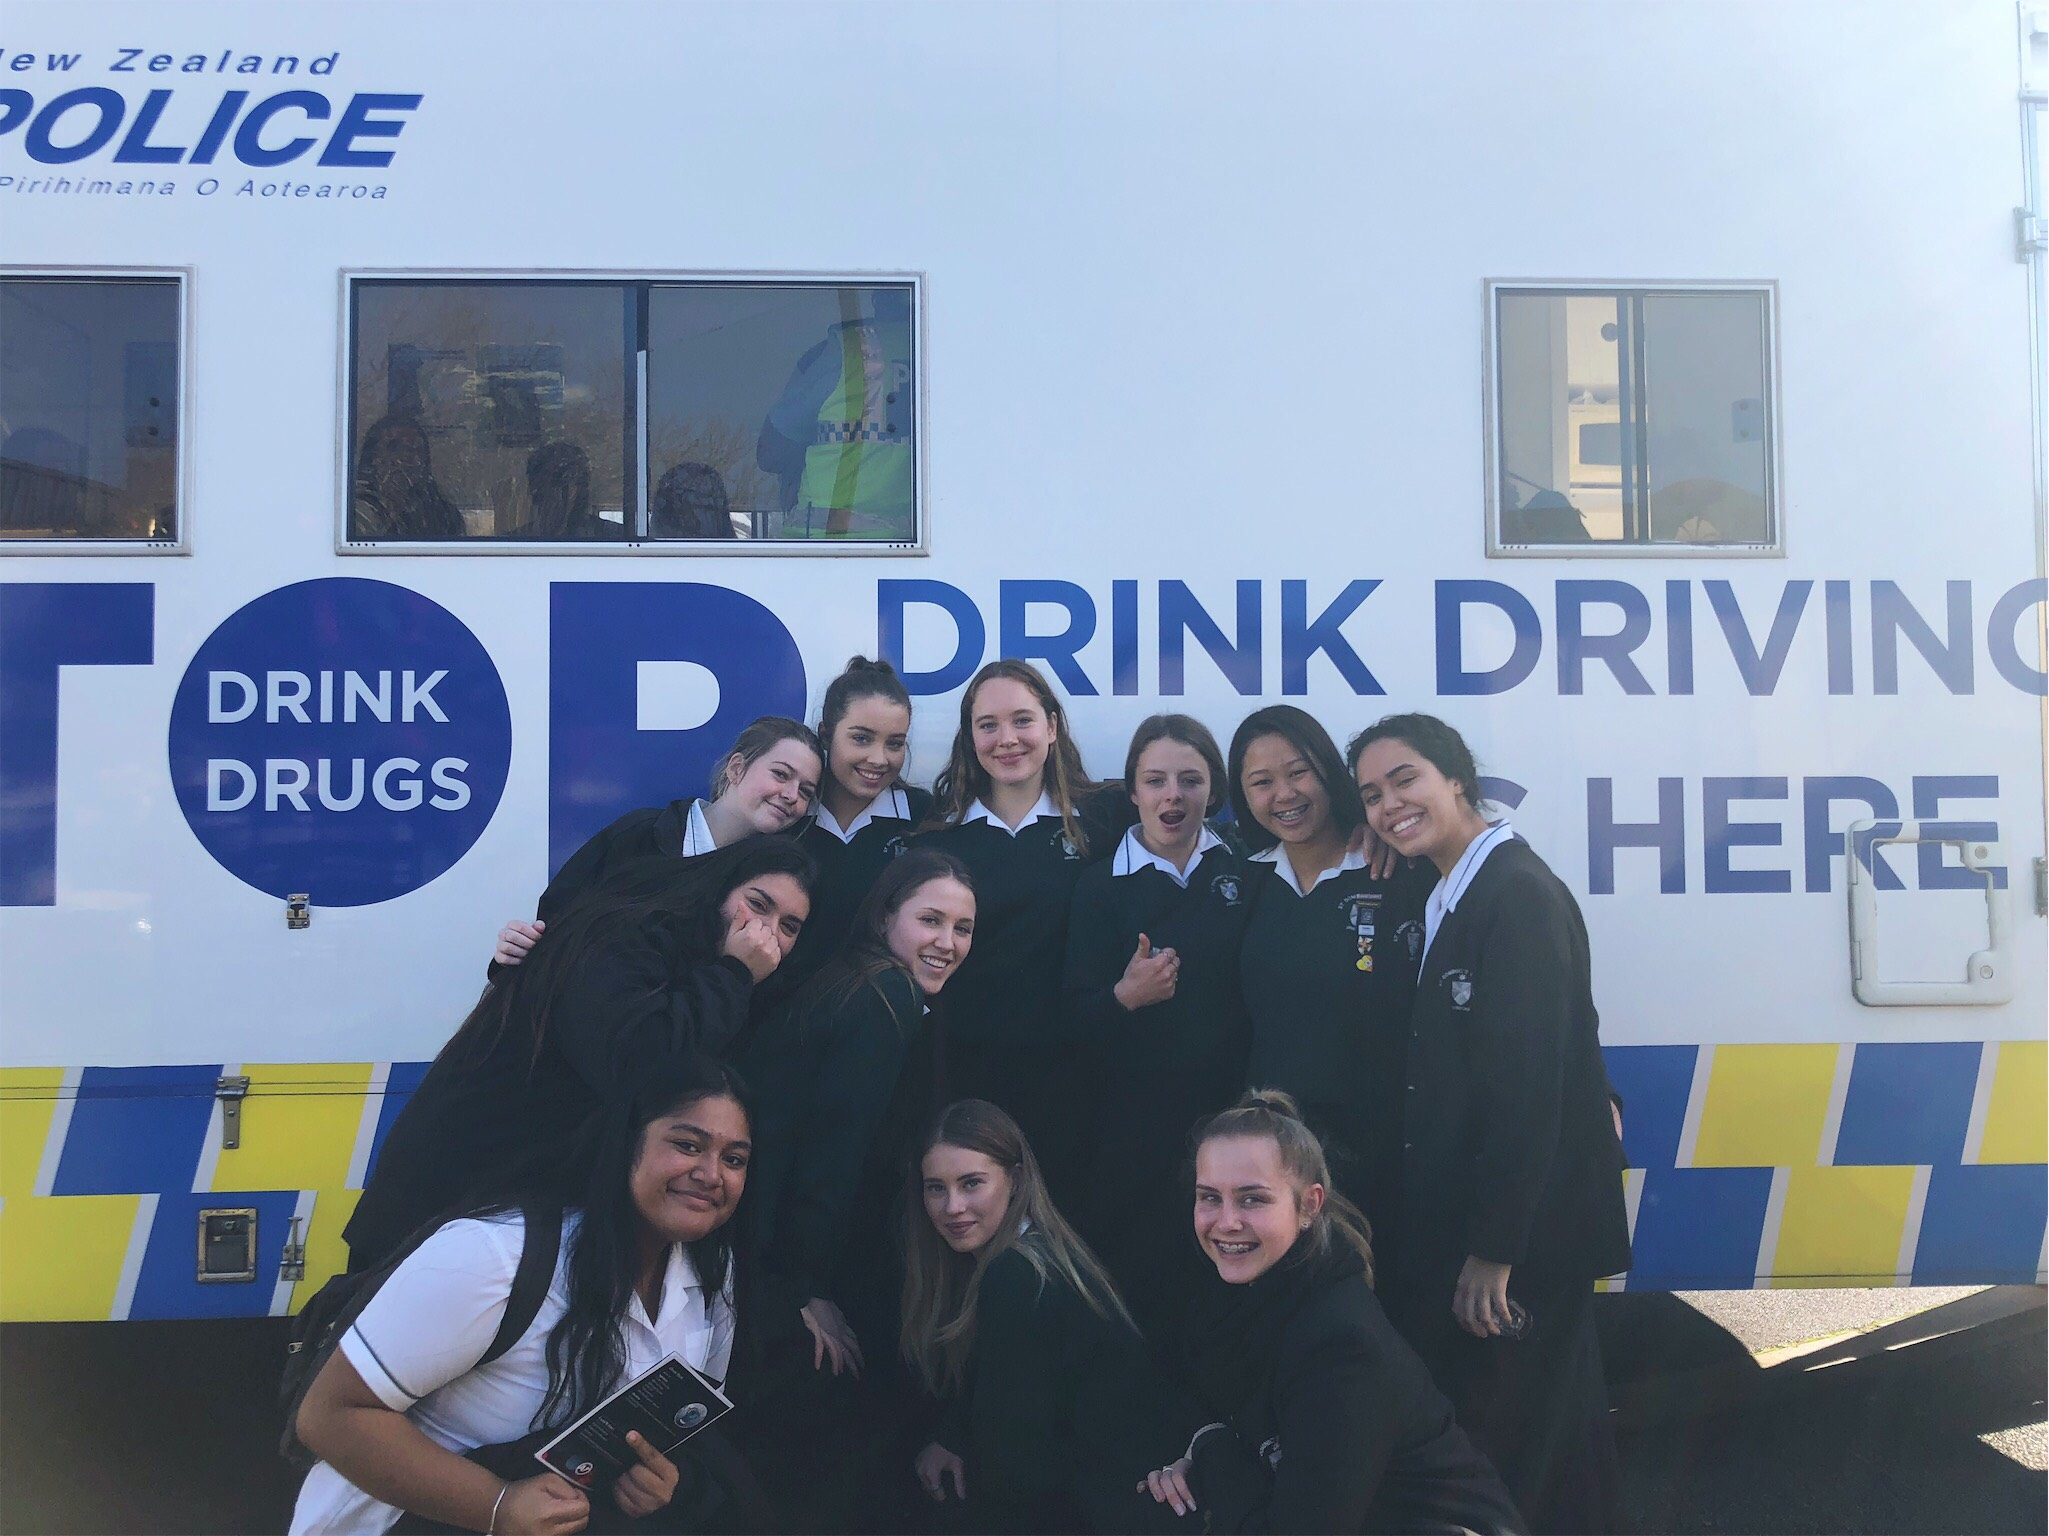 St Dominic's College collaborating with NZ Police on the Sober Drivers principle - bringing in the booze bus for education